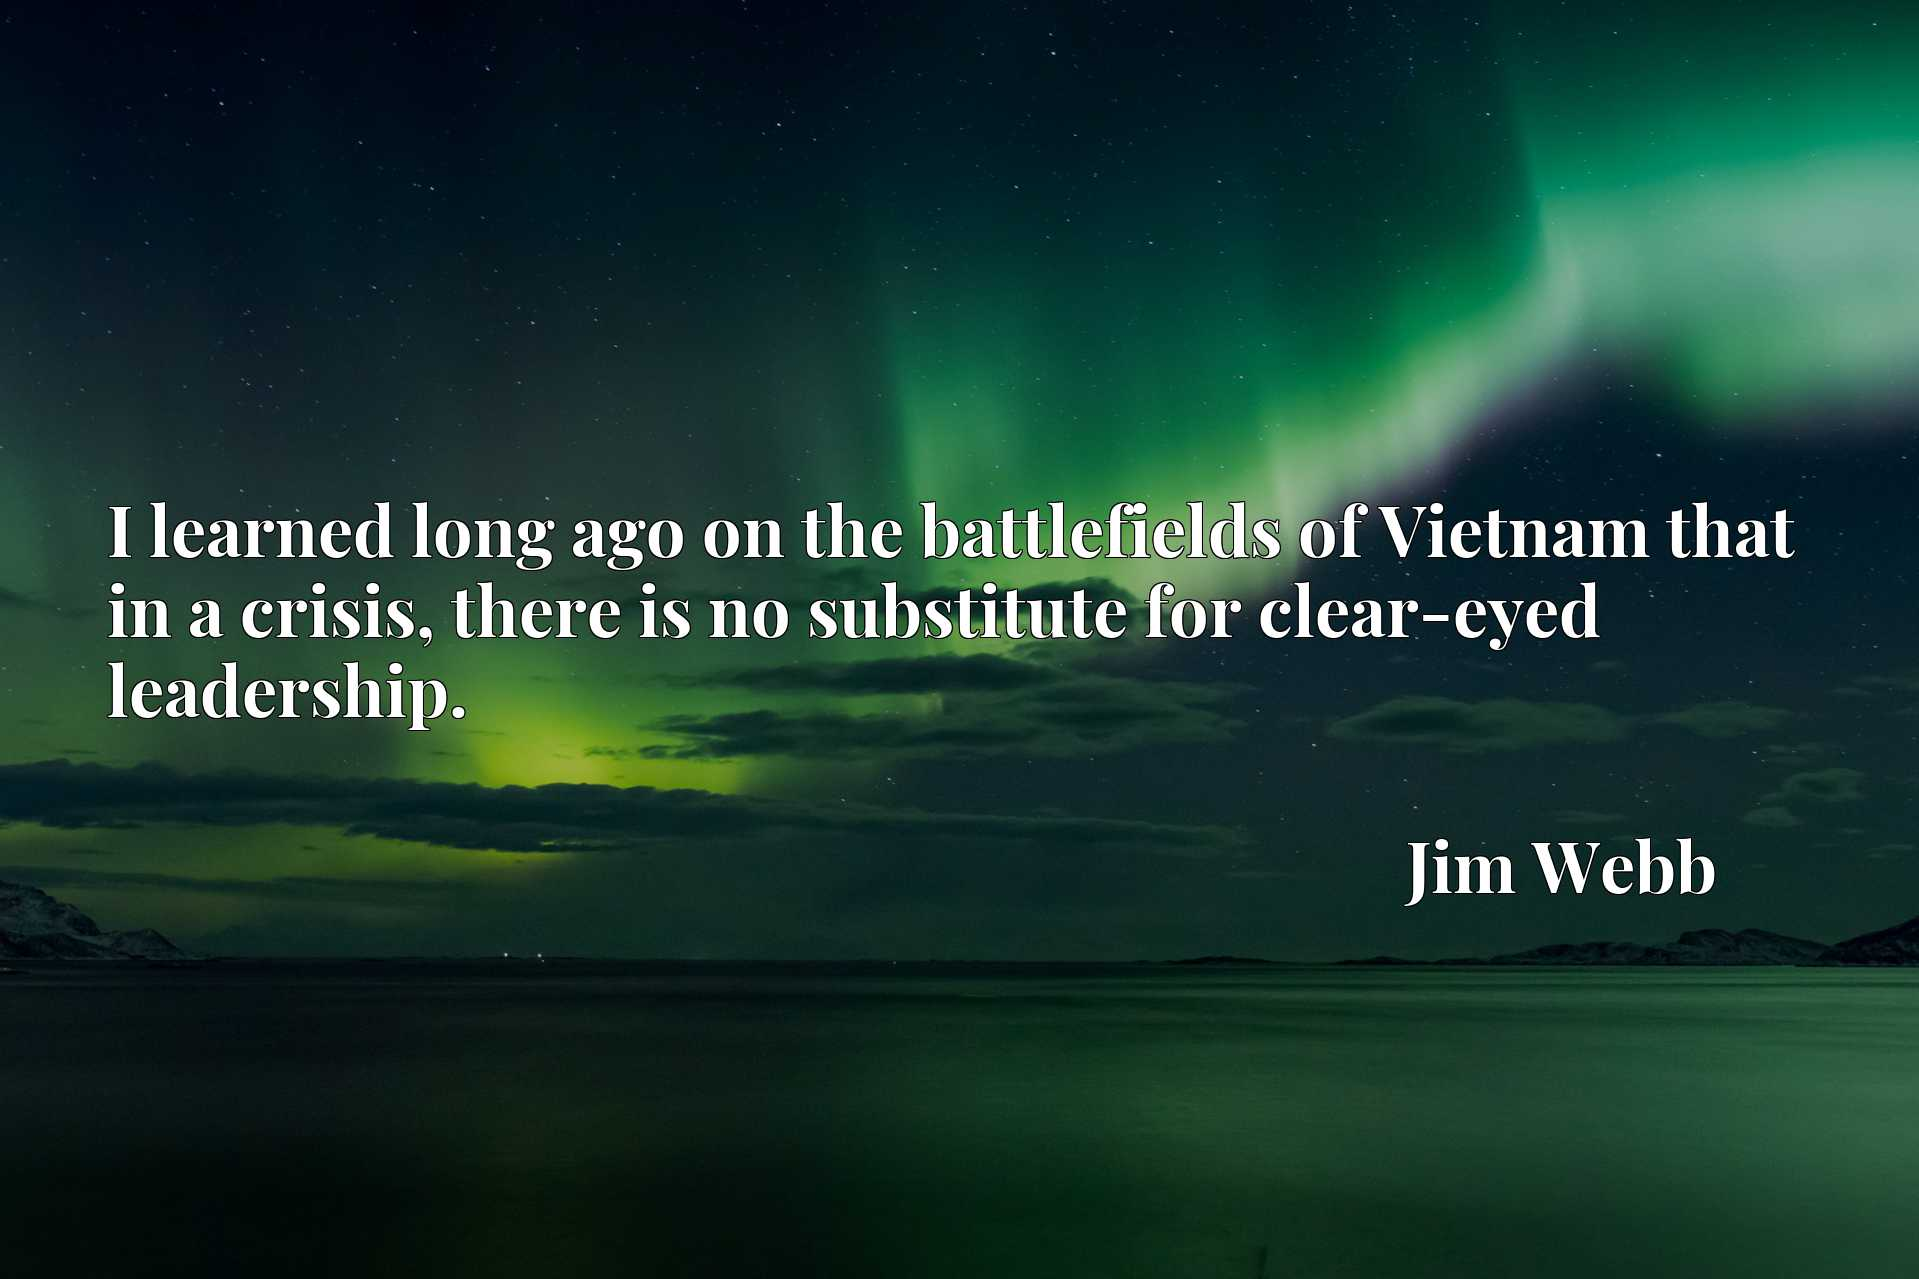 I learned long ago on the battlefields of Vietnam that in a crisis, there is no substitute for clear-eyed leadership.